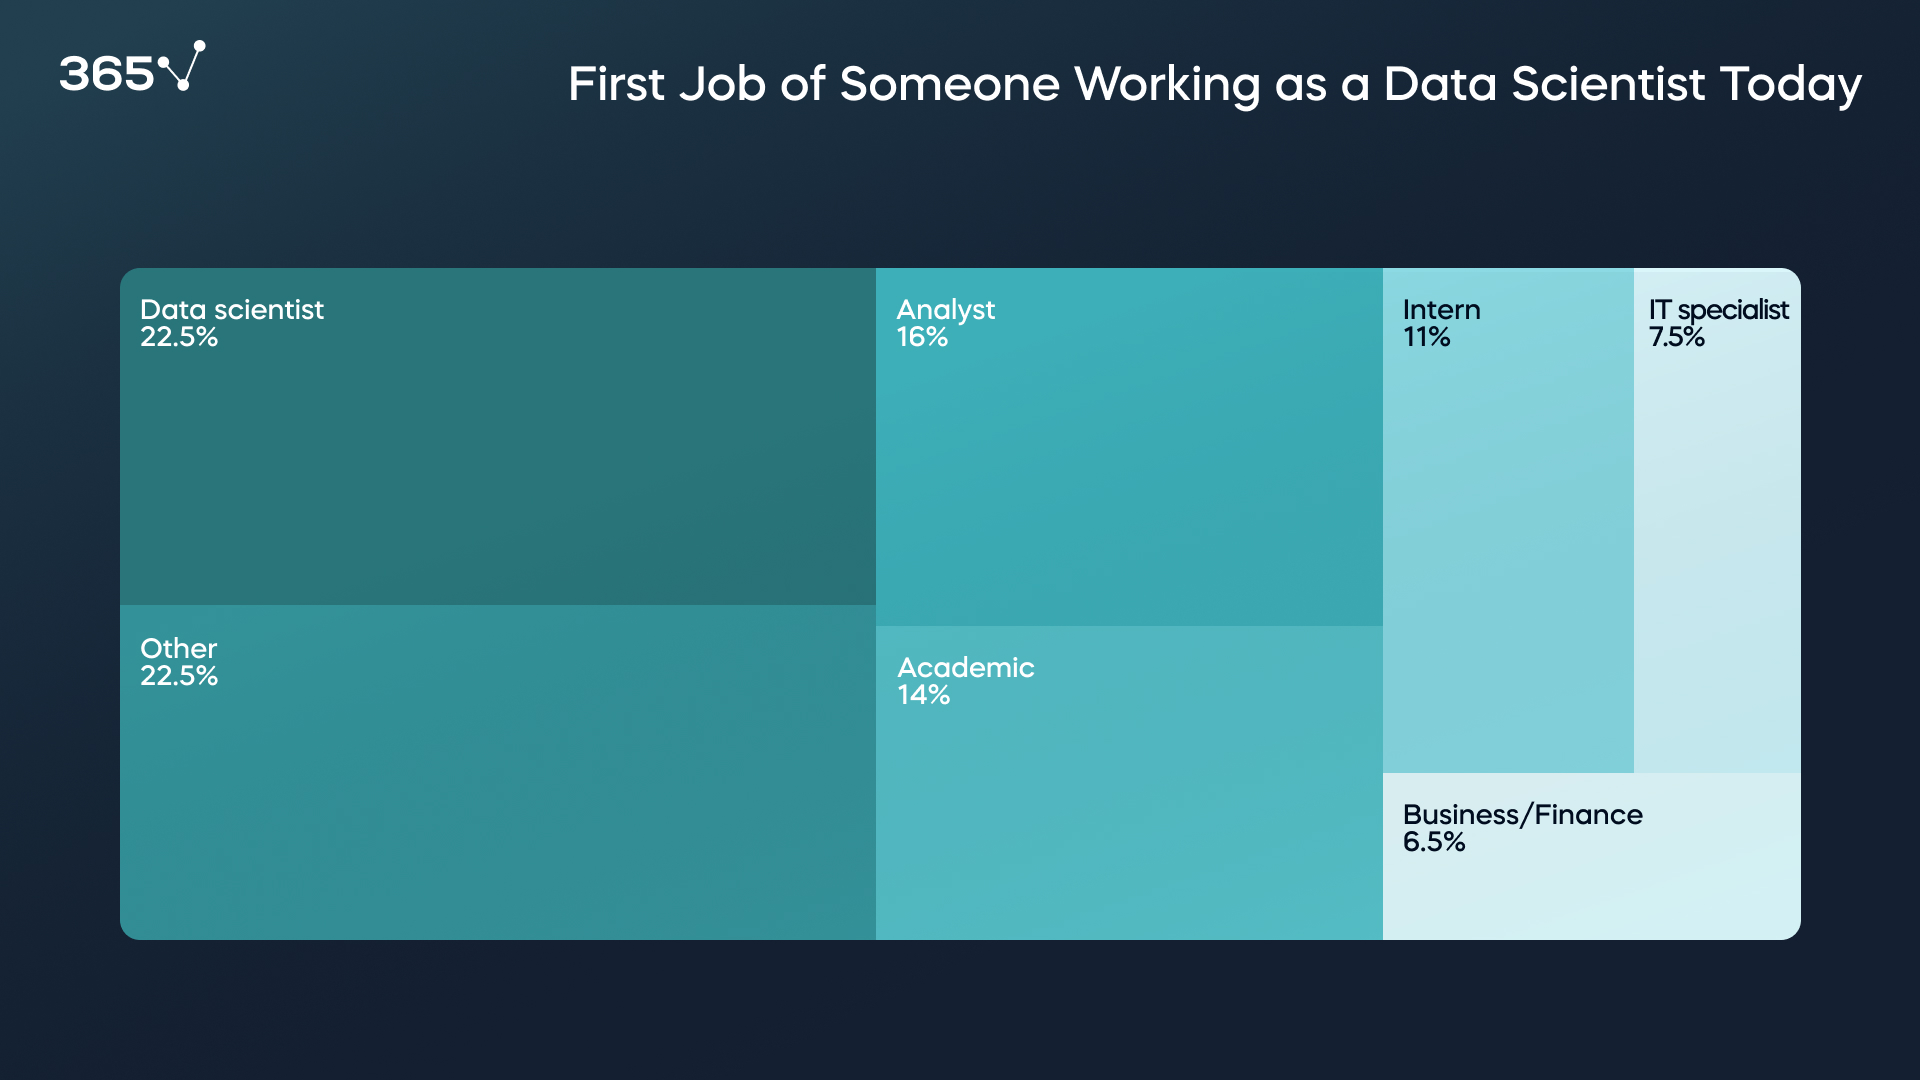 Research 1001 data scientists: First Job